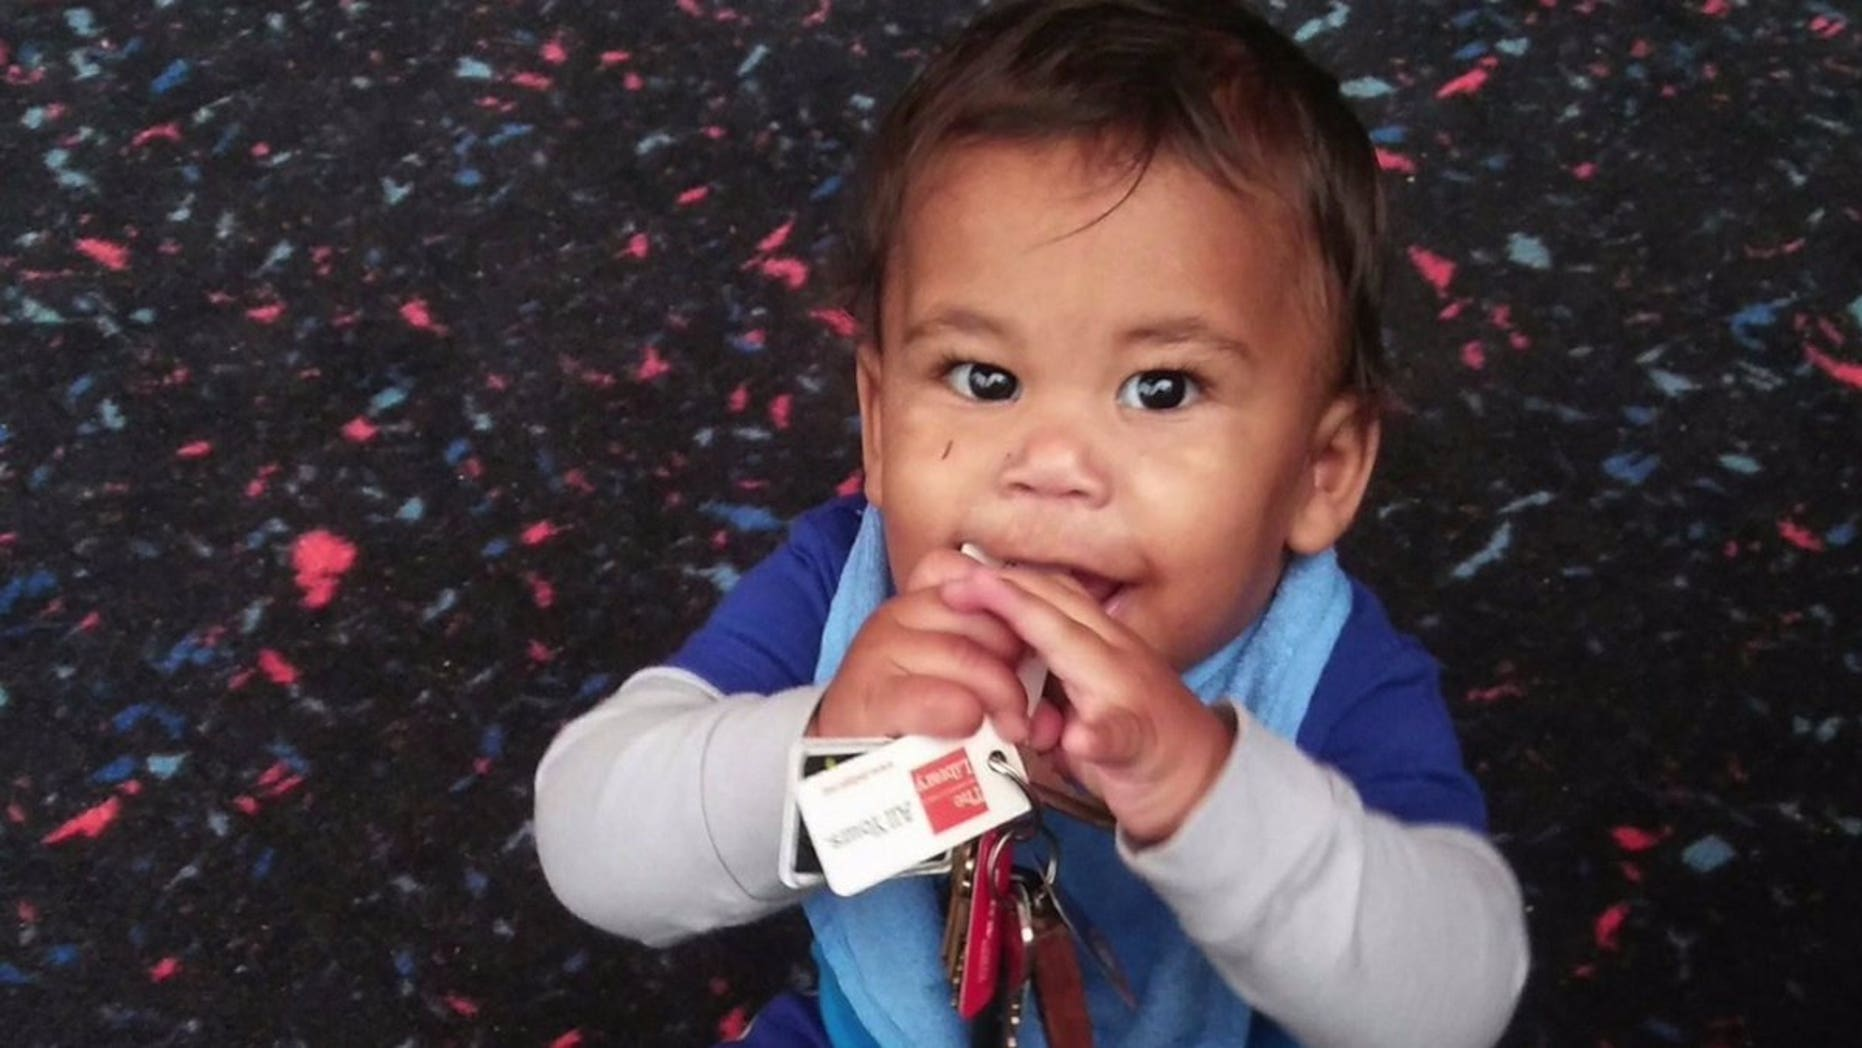 Major Maxie was declared brain dead after he was rushed to the hospital when his father found him not breathing in a car seat. (Fox 59)